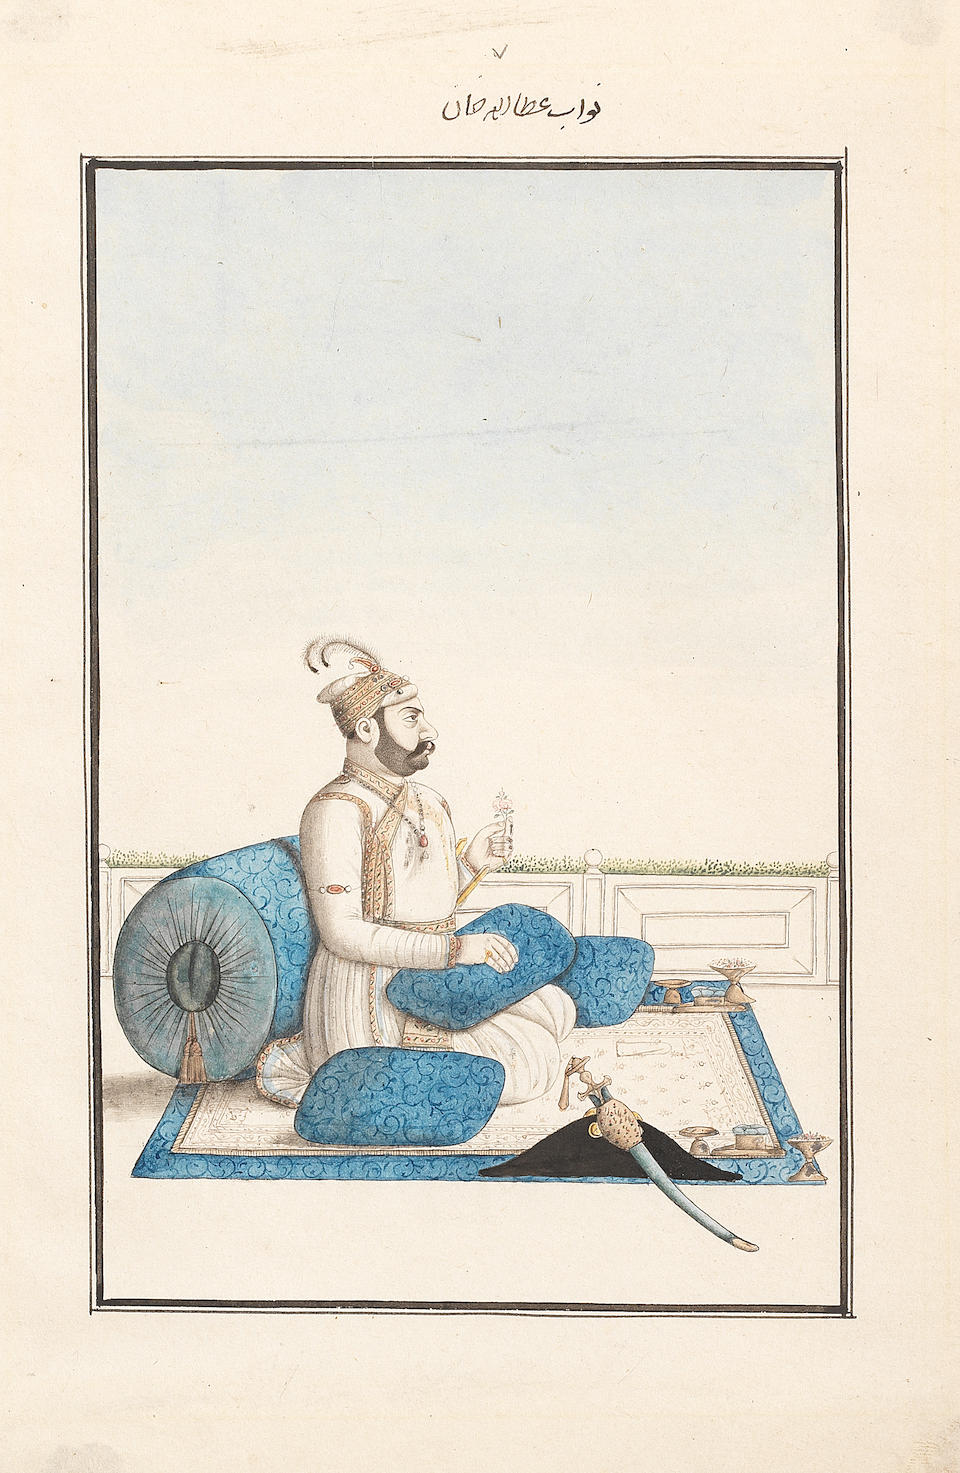 Five portraits of Nawabs and zamindars of Oudh seated on terraces Oudh, Murshidabad, late 18th Century(5)